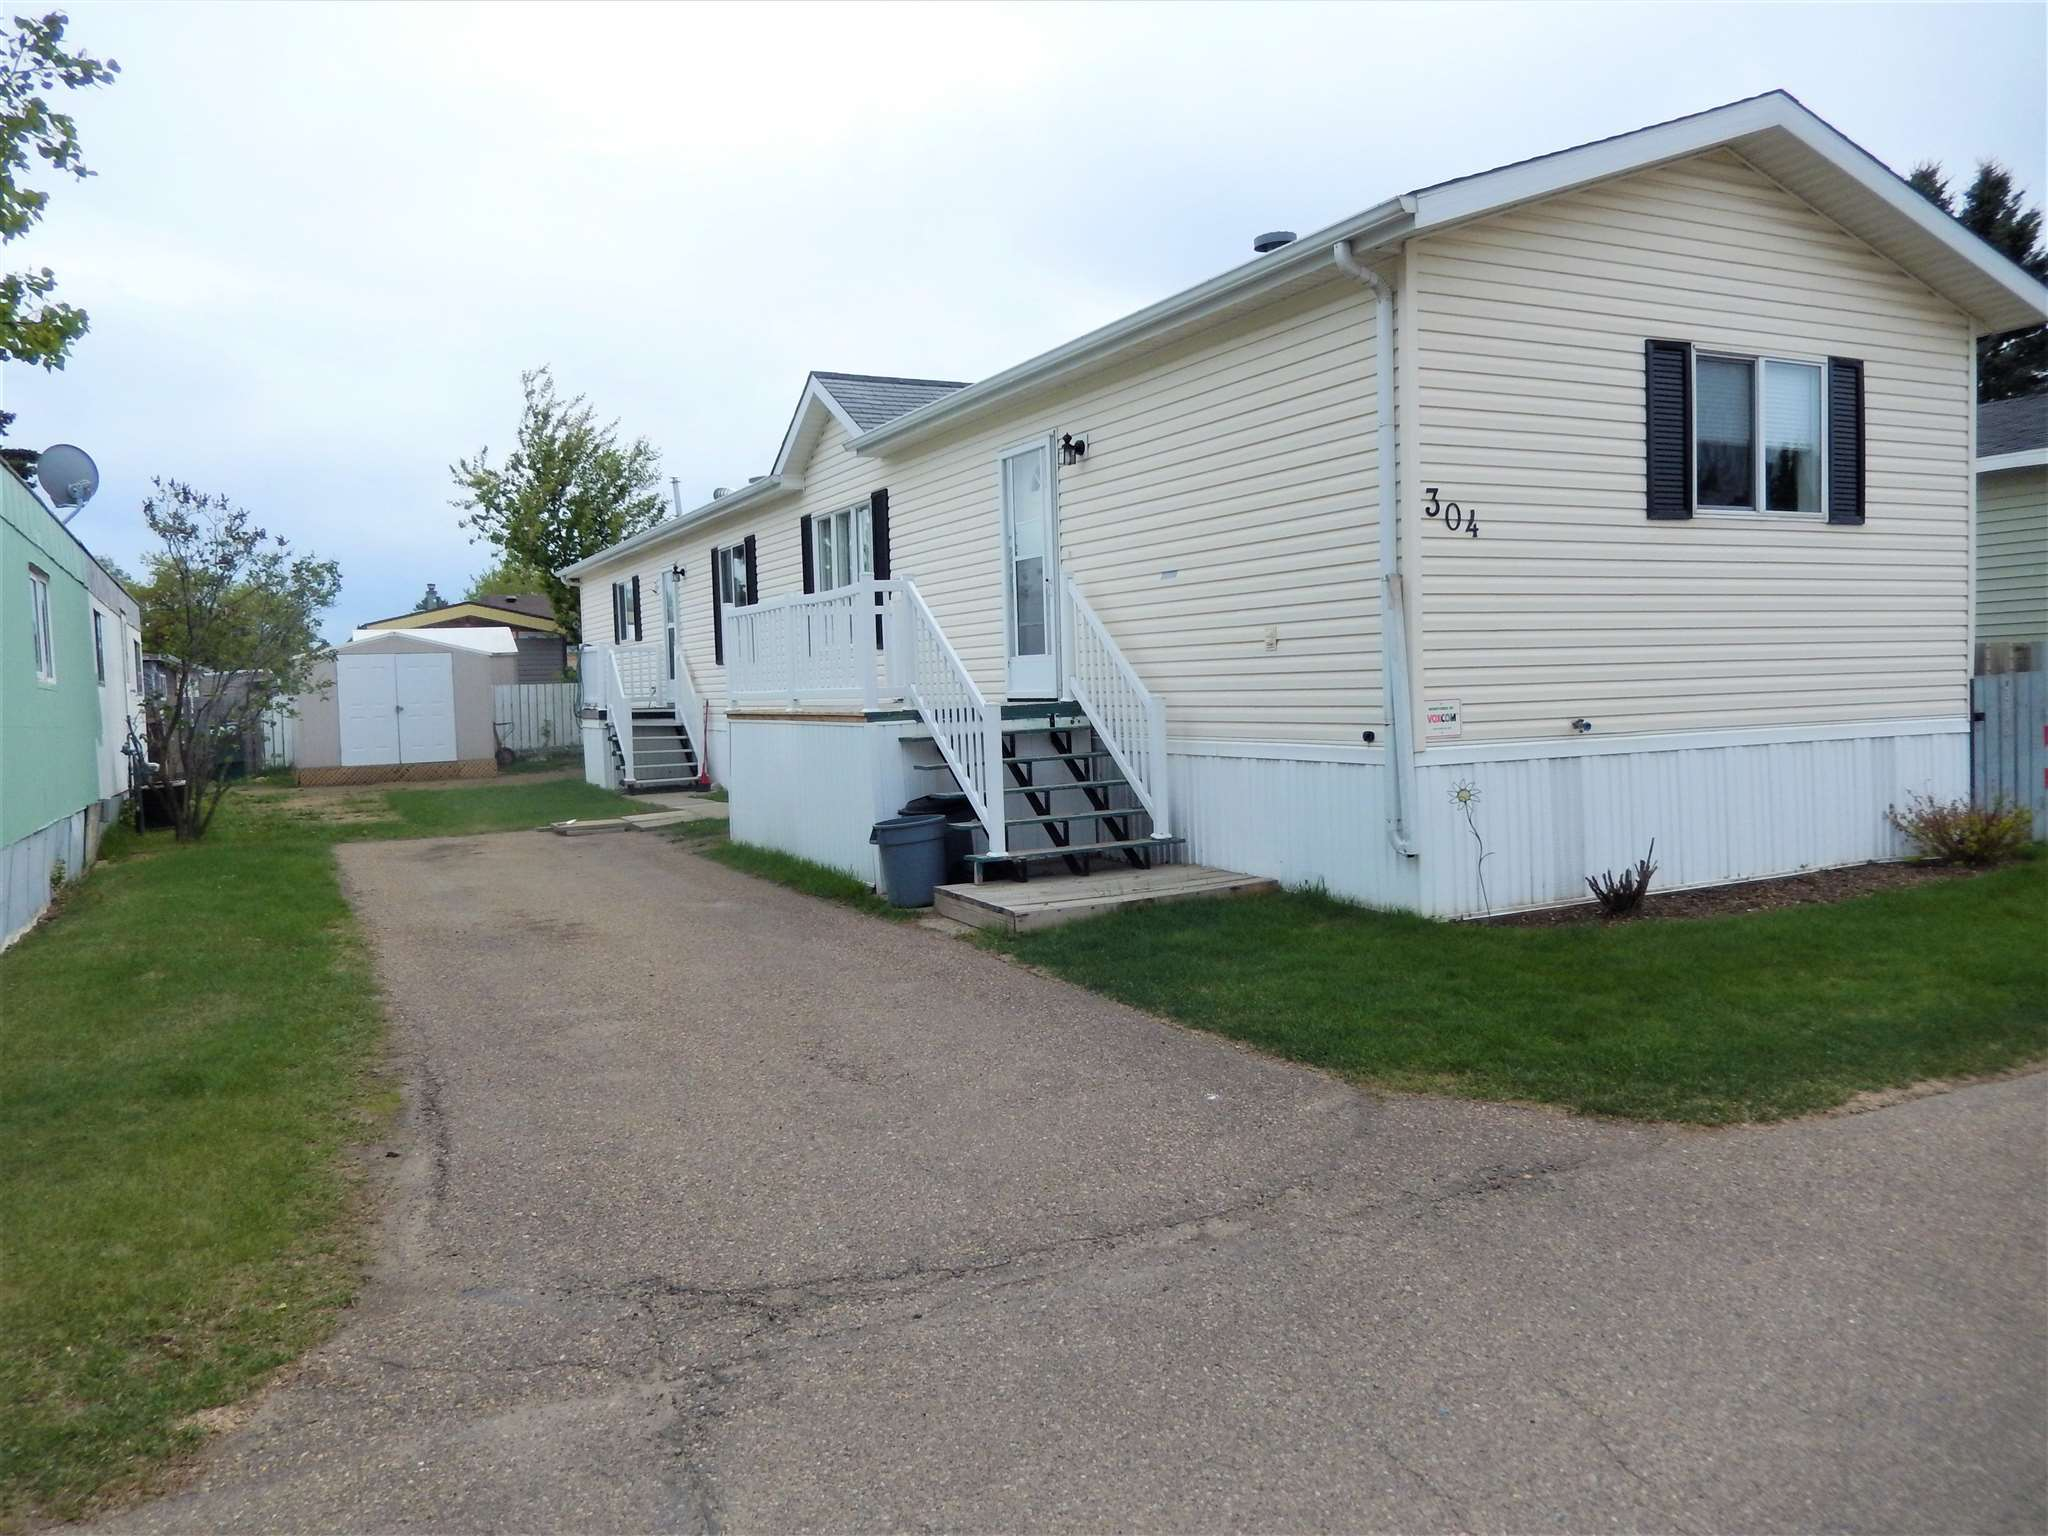 This well cared for NOBLE home has been in the same Family since it was new! Noble Homes are known for the quality of workmanship. This 3 bedr, 2 bath has plenty of BUILT INS in the Kitchen, Dining Area & the Living Rm, plus there is a BIG PANTRY. The Master Bedr sits at the back of the home & the ENSUITE has a CORNER JACUZZI. The SHINGLES are about 10 yrs old; the home was just RE-LEVELED and sits on cement & wood blocks; Both BATHR SINKS & TAPS have been replaced. There are NEWER BLINDS & 5 CEILING FANS! DISHWASHER is newer.  There is NO CARPET...just LAMINATE & LINO. This property is AVAILABLE for a QUICK POSSESSION!  Westview sits minutes to the west of Edmonton and is a very well maintained park and offers many services & amenities including a FREE FITNESS CENTRE, COMMUNITY HALL, SPORTING AREAS, POND, WALKING PATHS, PLAYGROUNDS,  STORE, GASBAR, PUB, & much more.